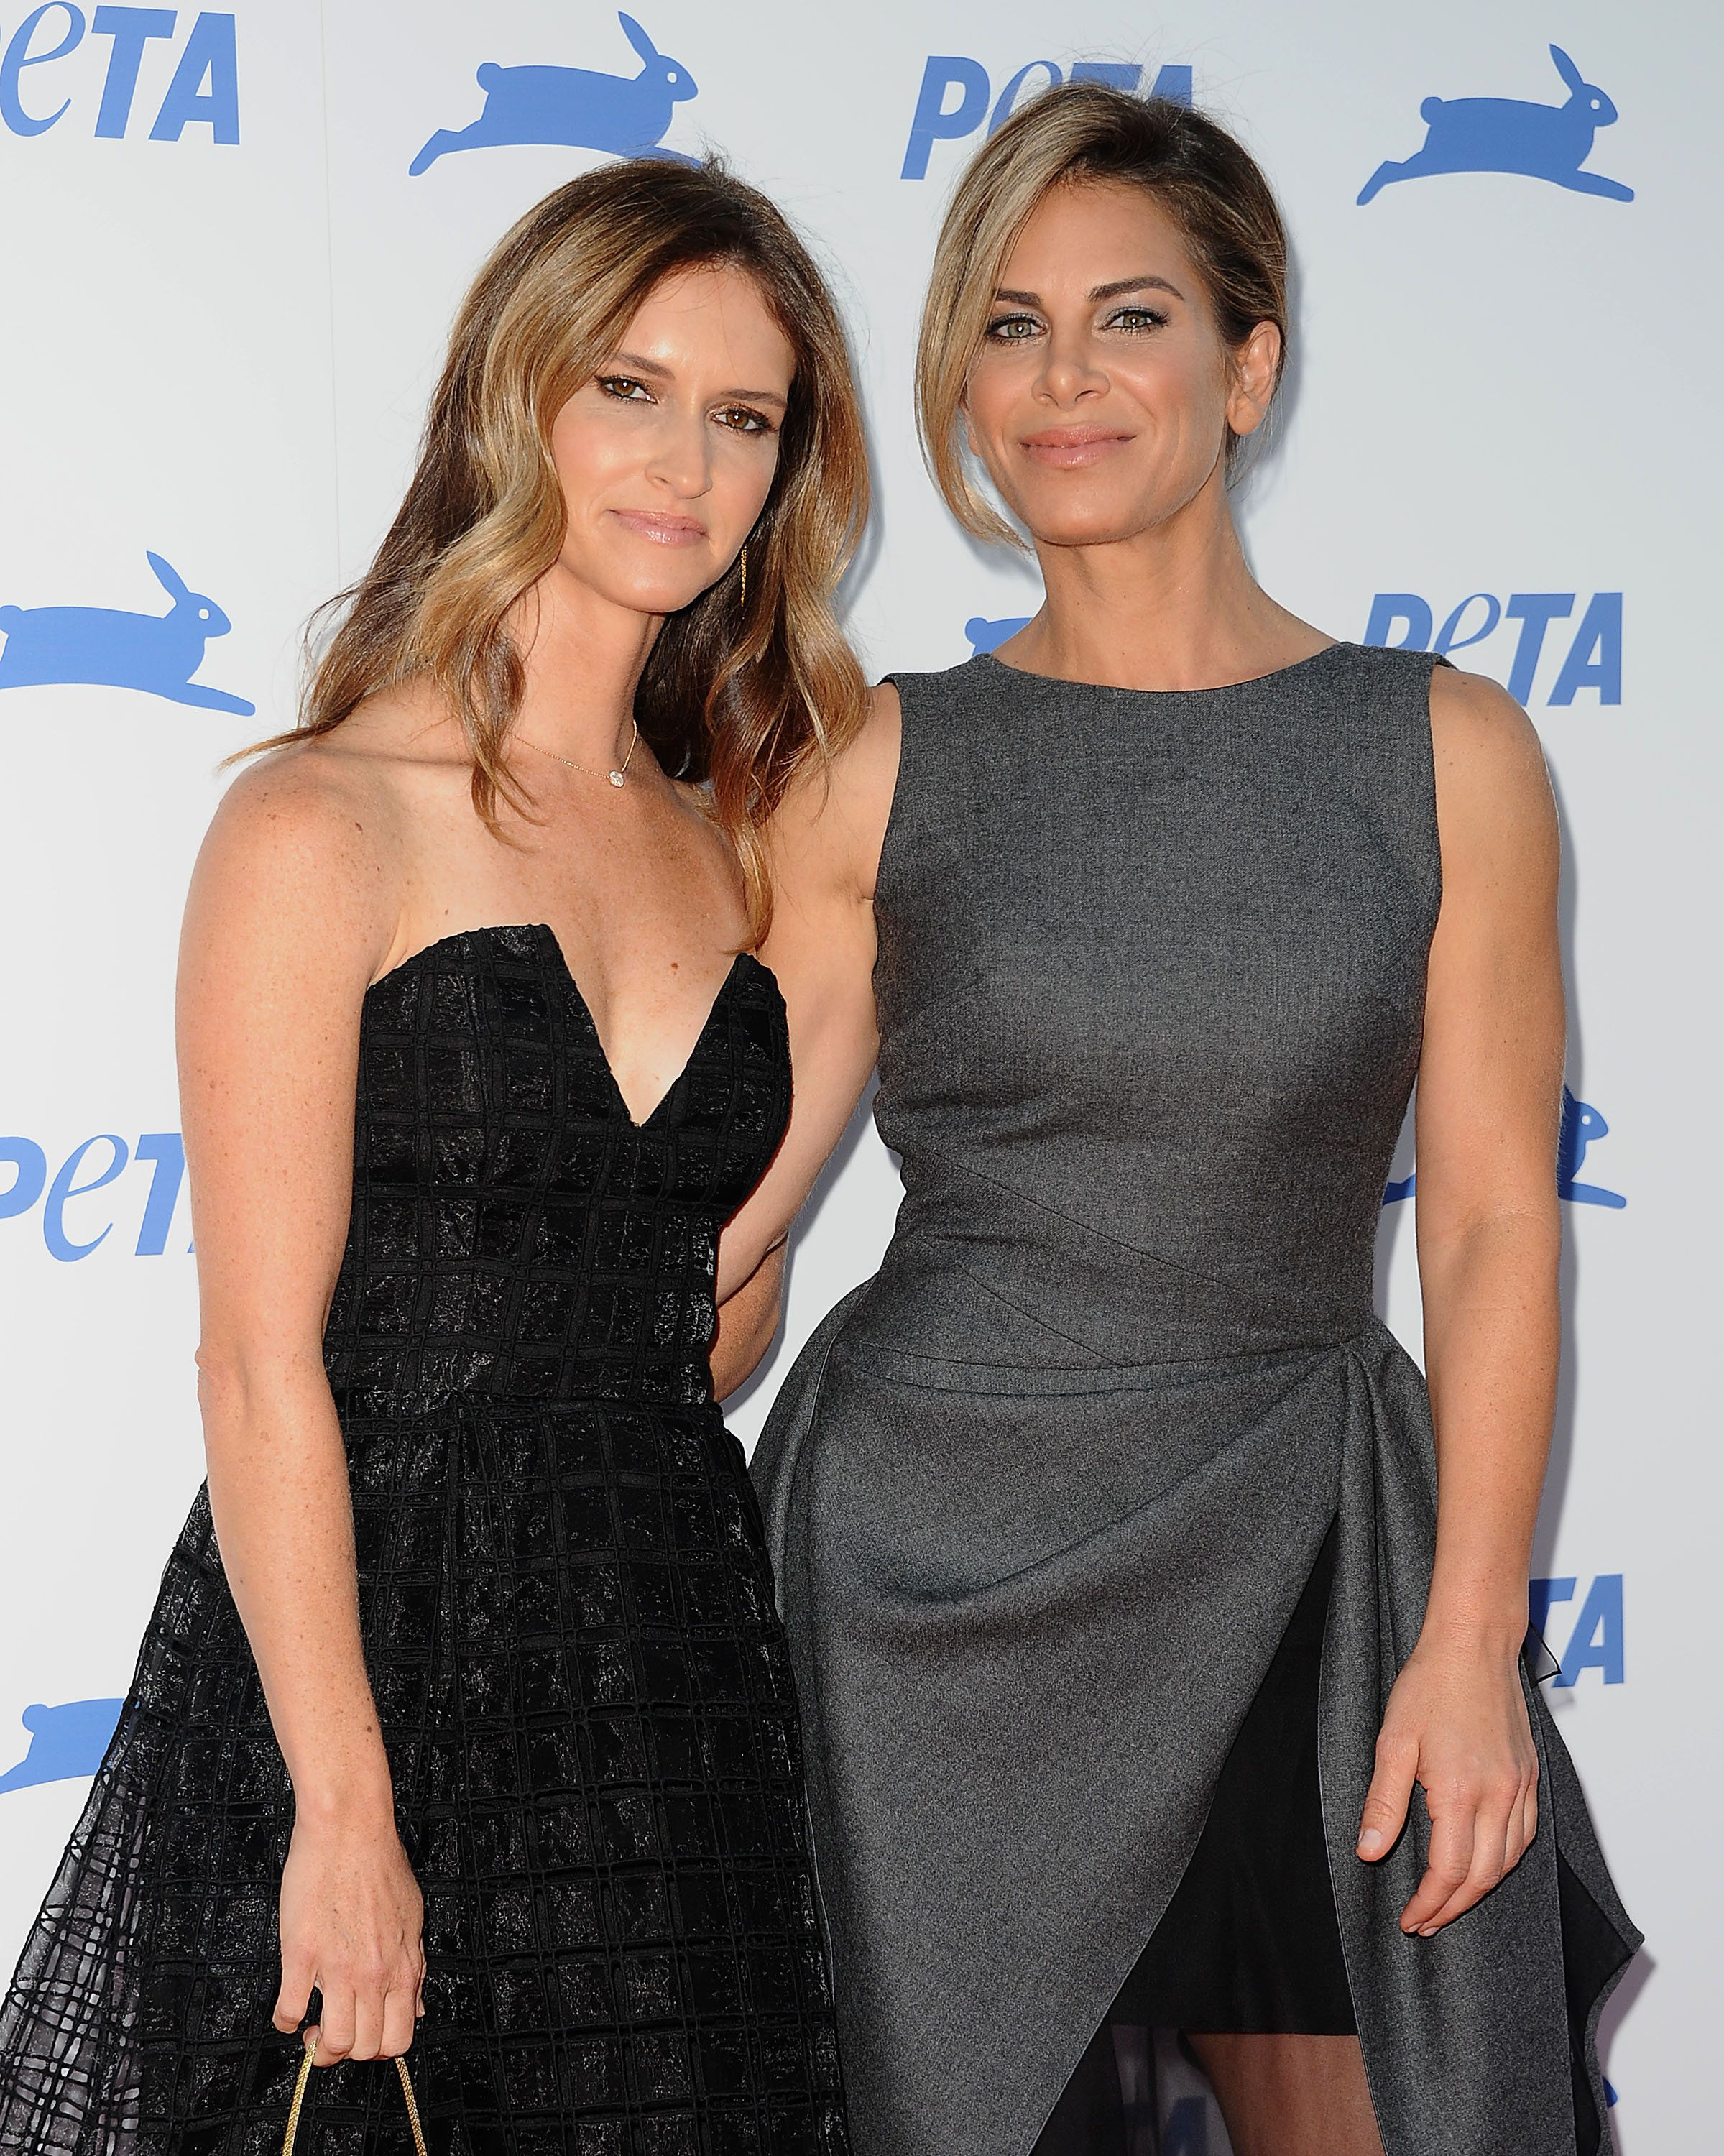 LOS ANGELES, CA - SEPTEMBER 30:  Jillian Michaels (R) and Heidi Rhoades attend PETA's 35th anniversary party at Hollywood Palladium on September 30, 2015 in Los Angeles, California.  (Photo by Jason LaVeris/FilmMagic)